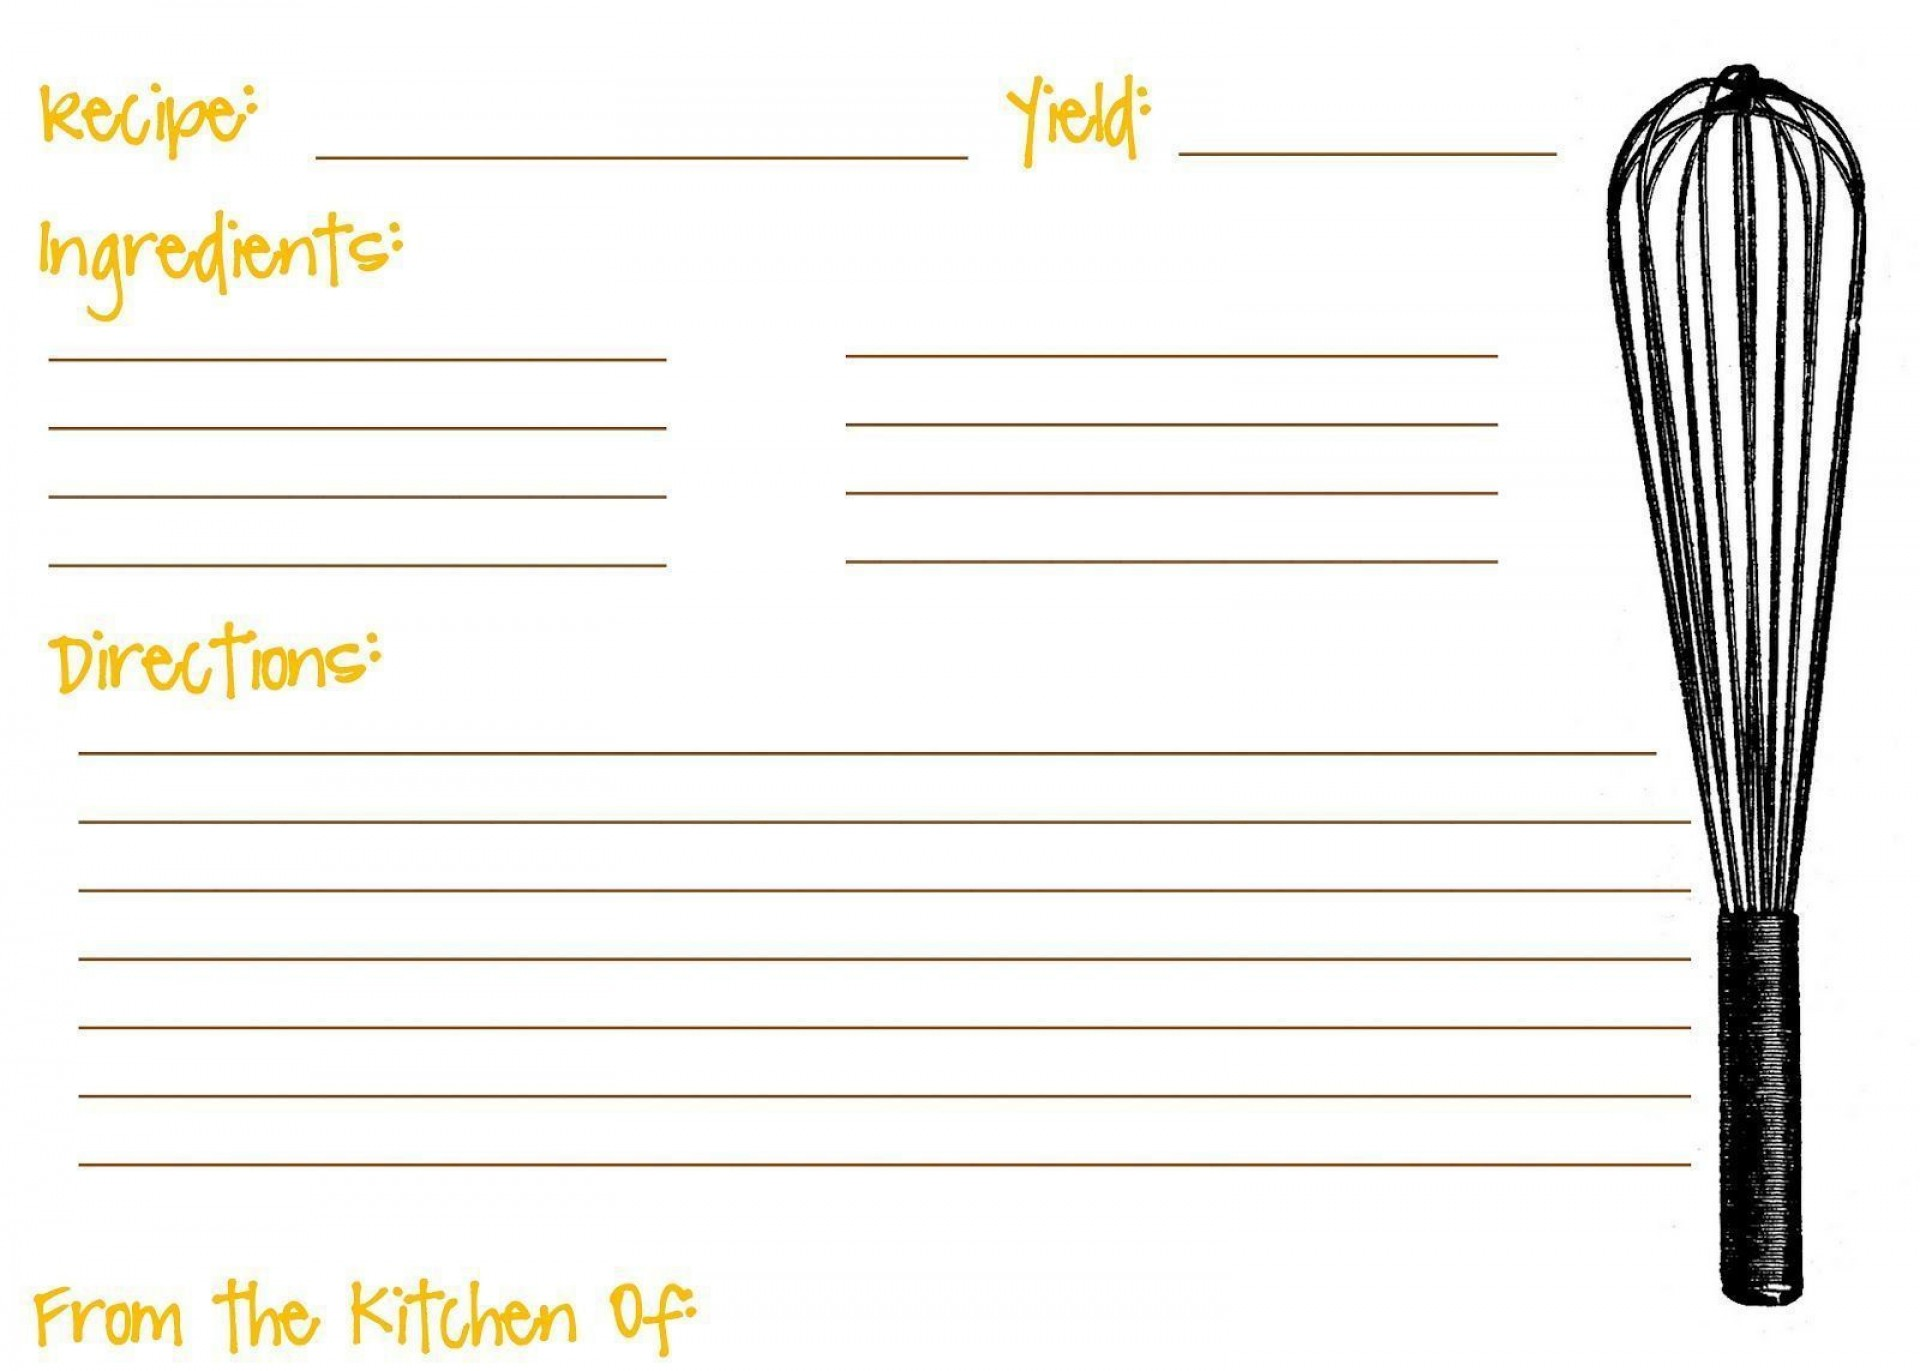 005 Awful Editable Recipe Card Template Picture  Free For Microsoft Word 4x6 Page1920